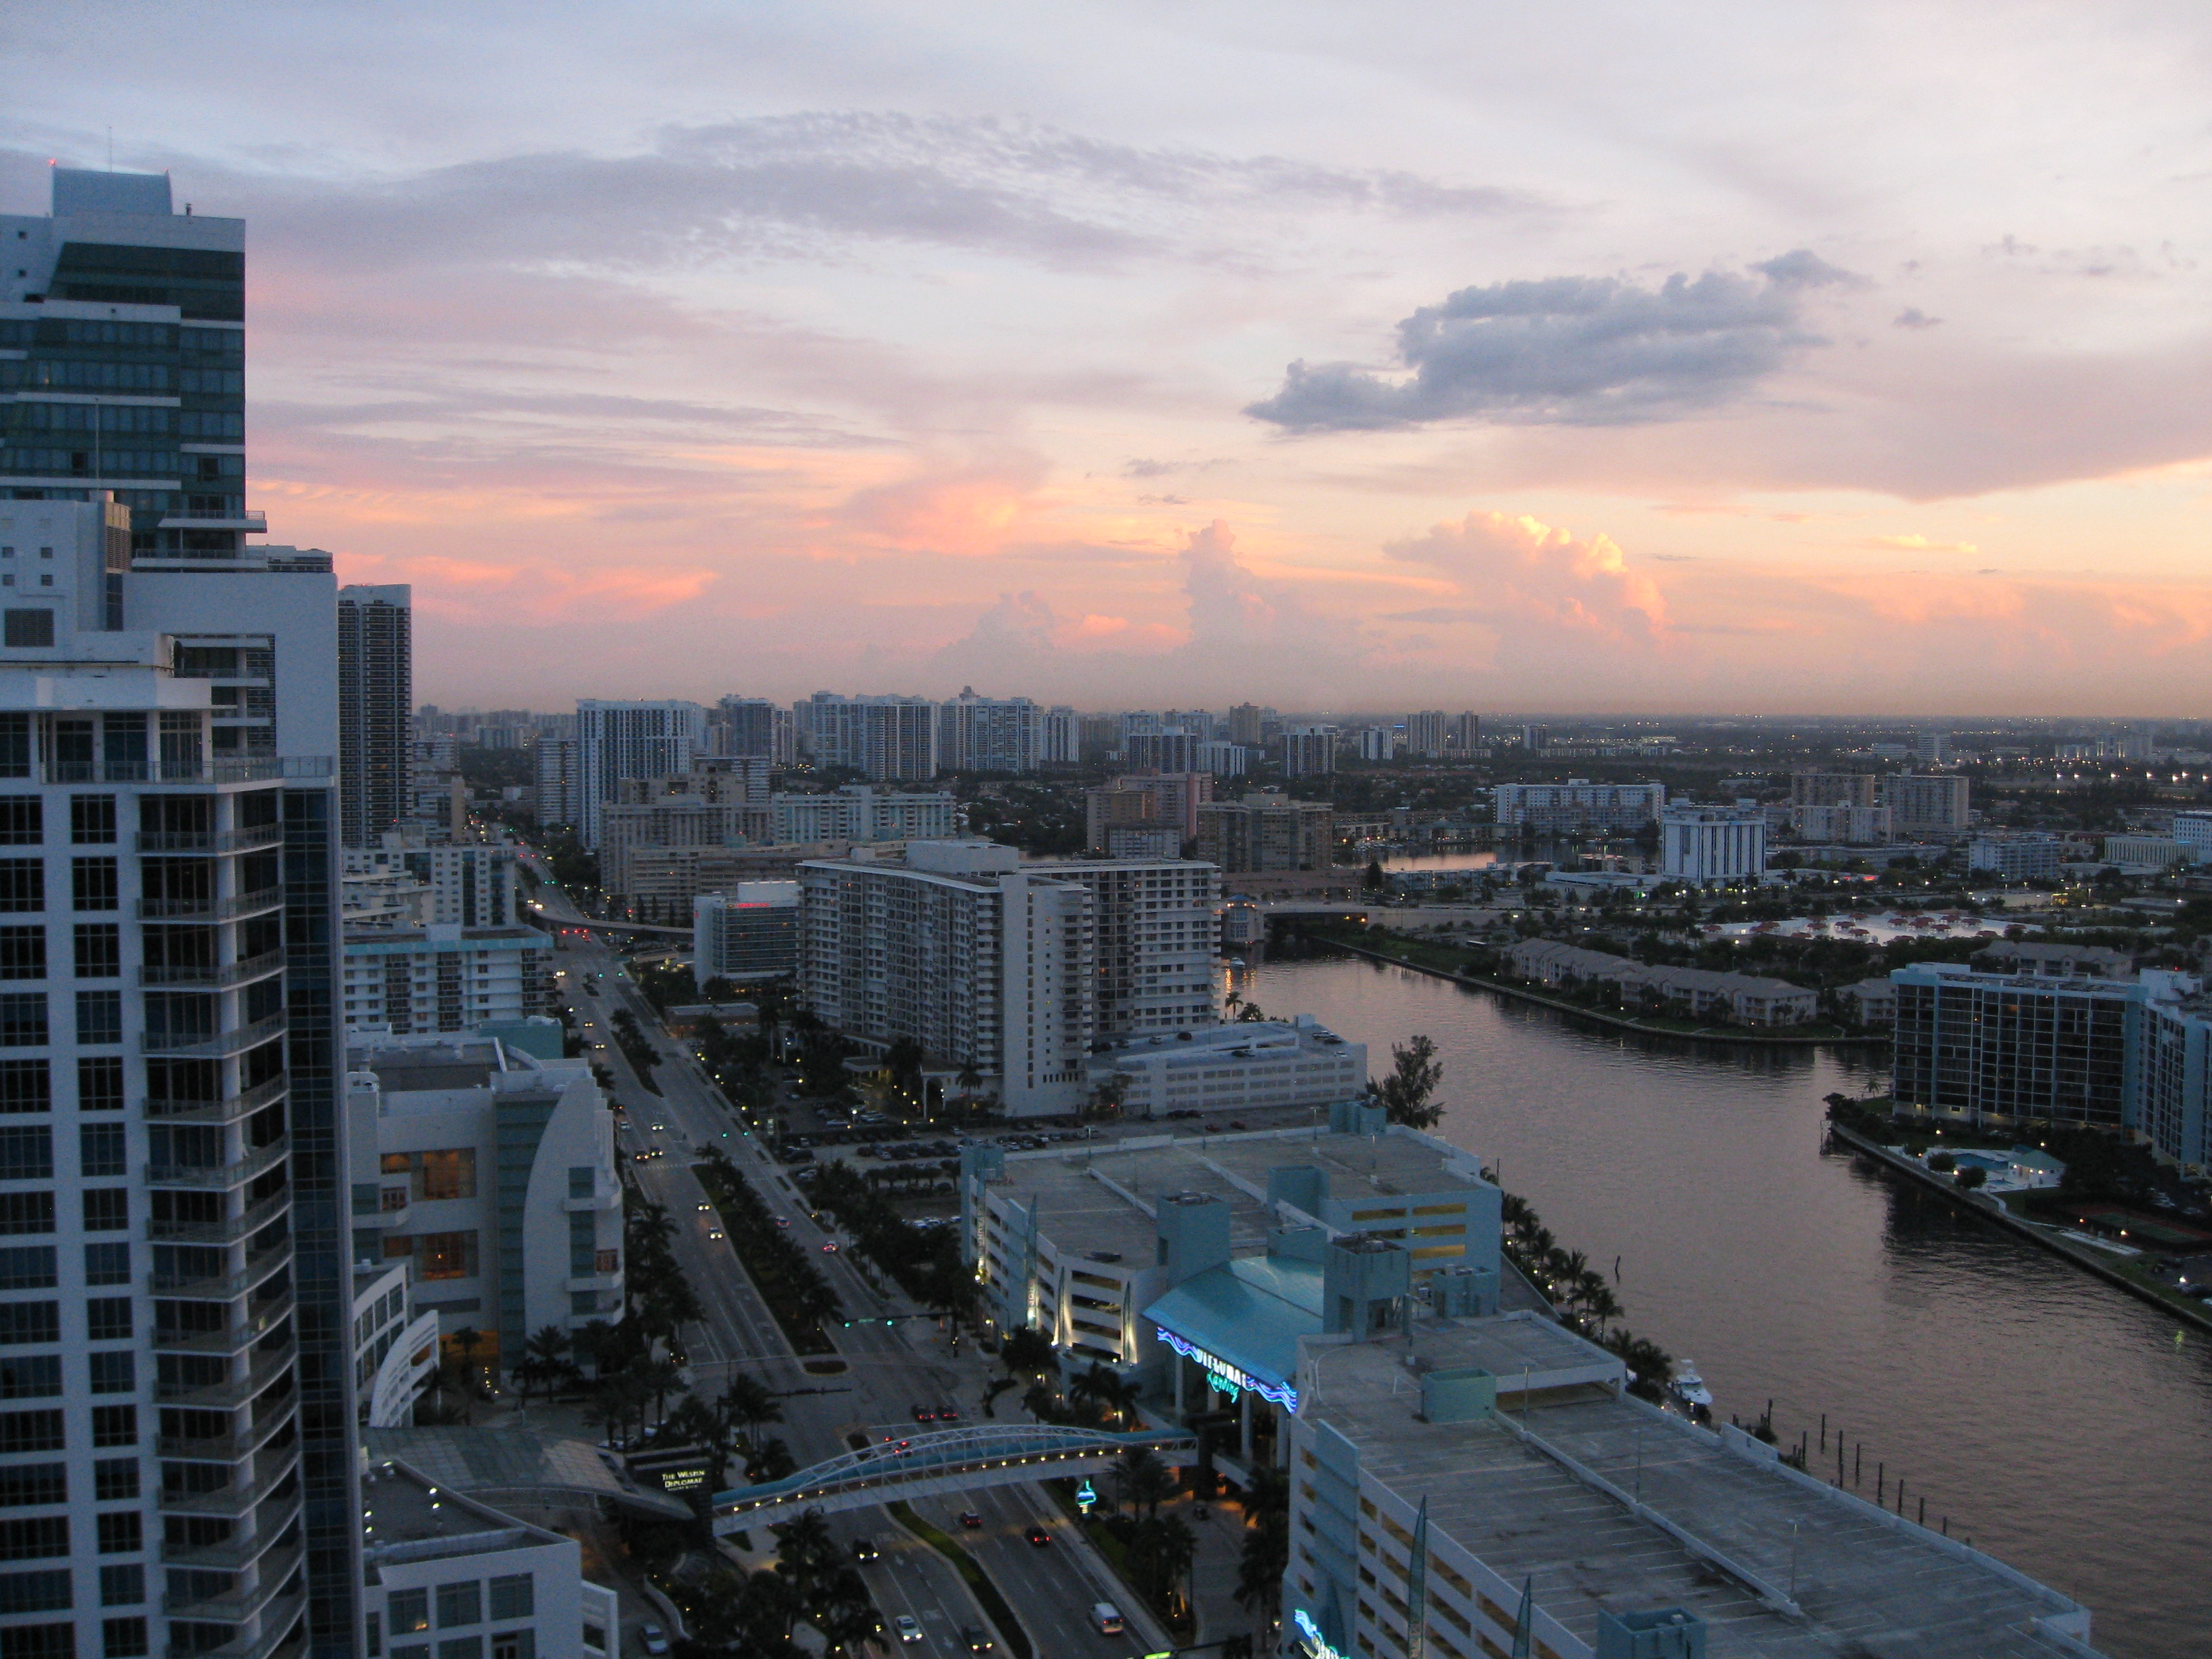 South Miami Sunset